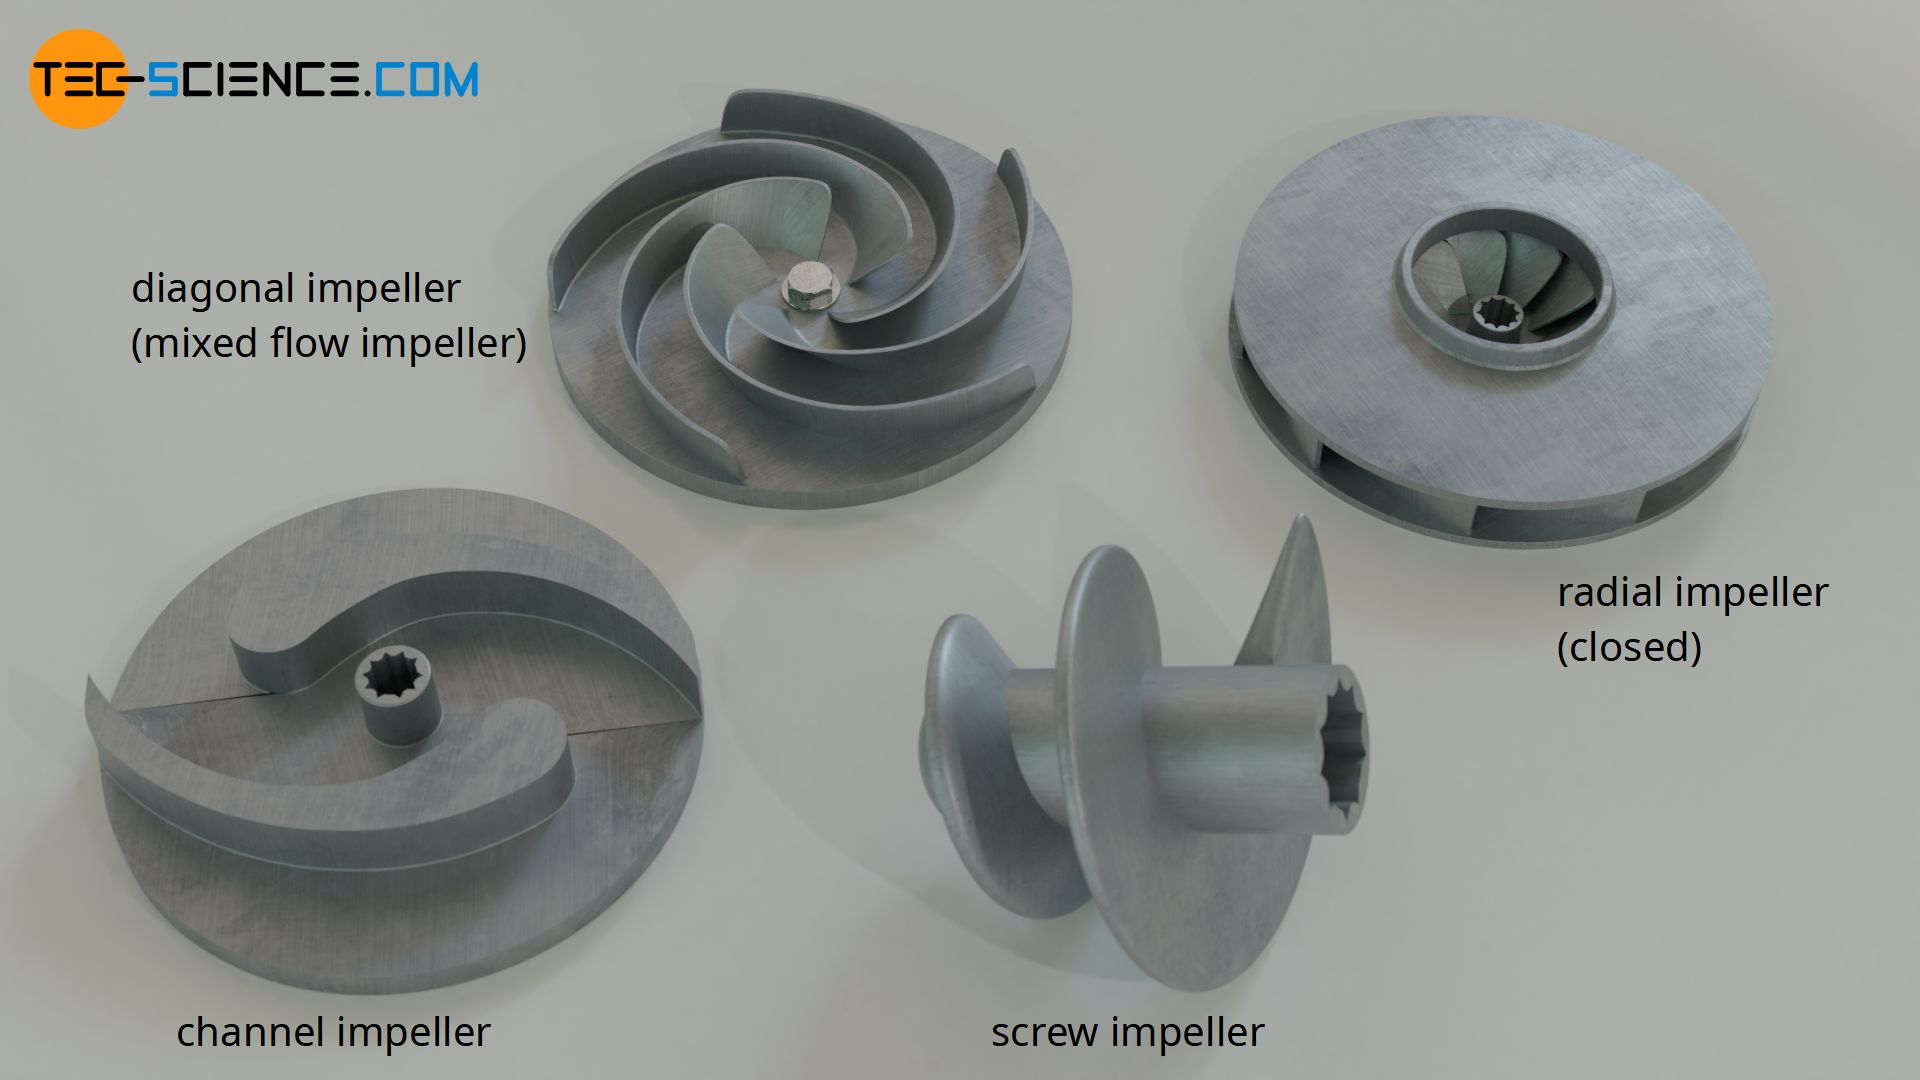 Types of impellers for centrifugal pumps